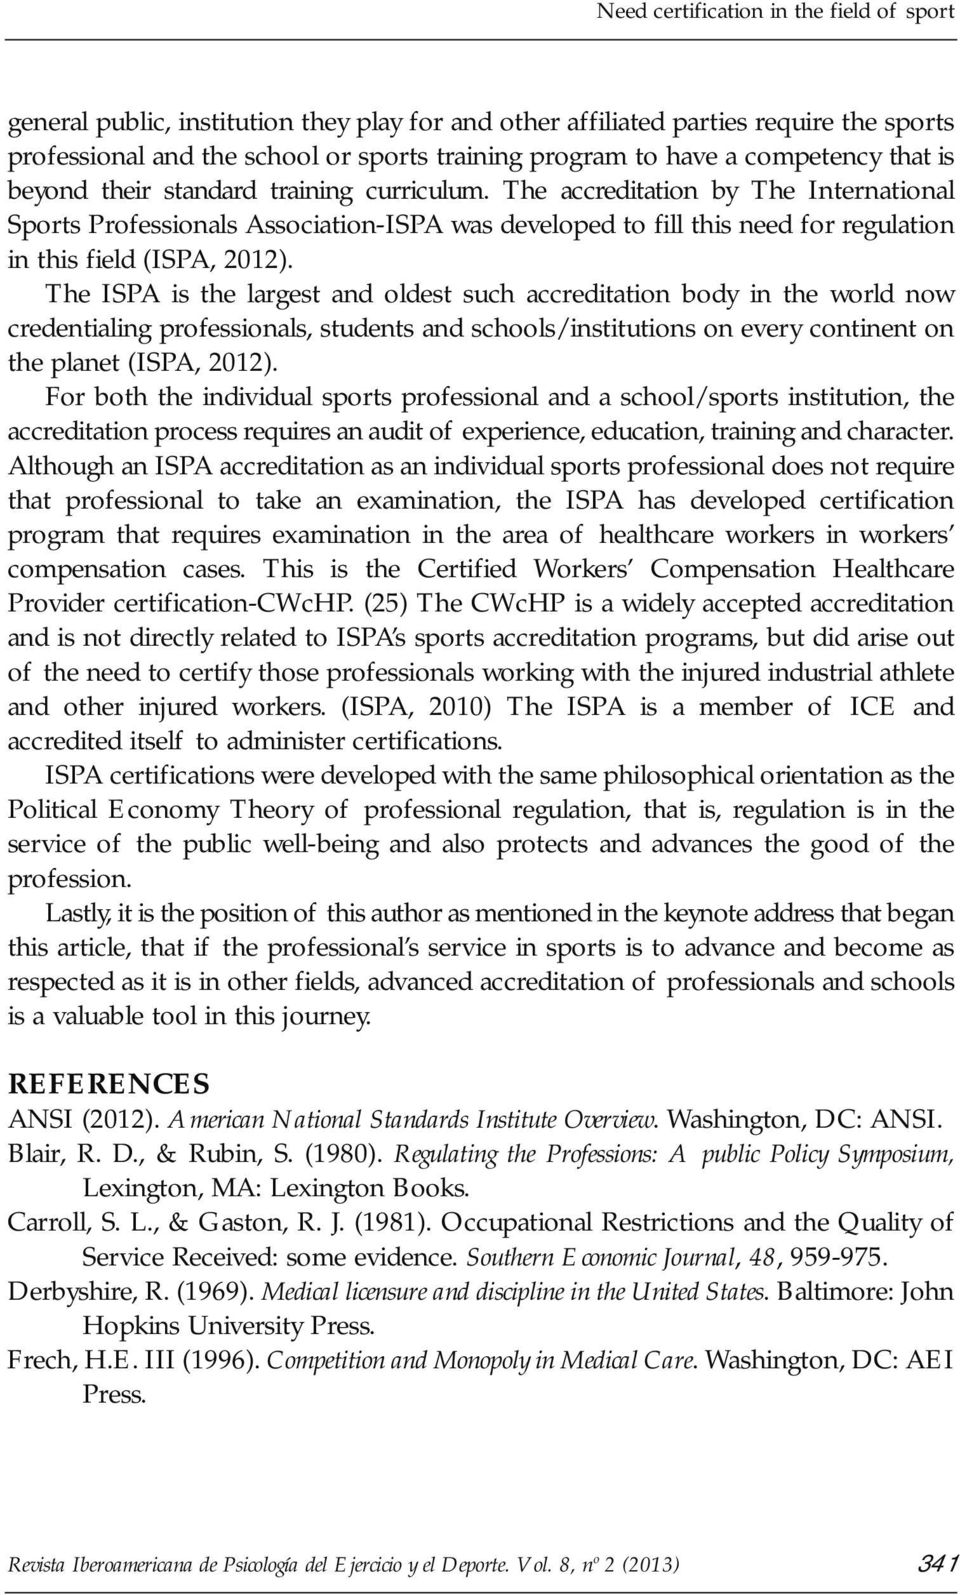 The accreditation by The International Sports Professionals Association-ISPA was developed to fill this need for regulation in this field (ISPA, 2012).